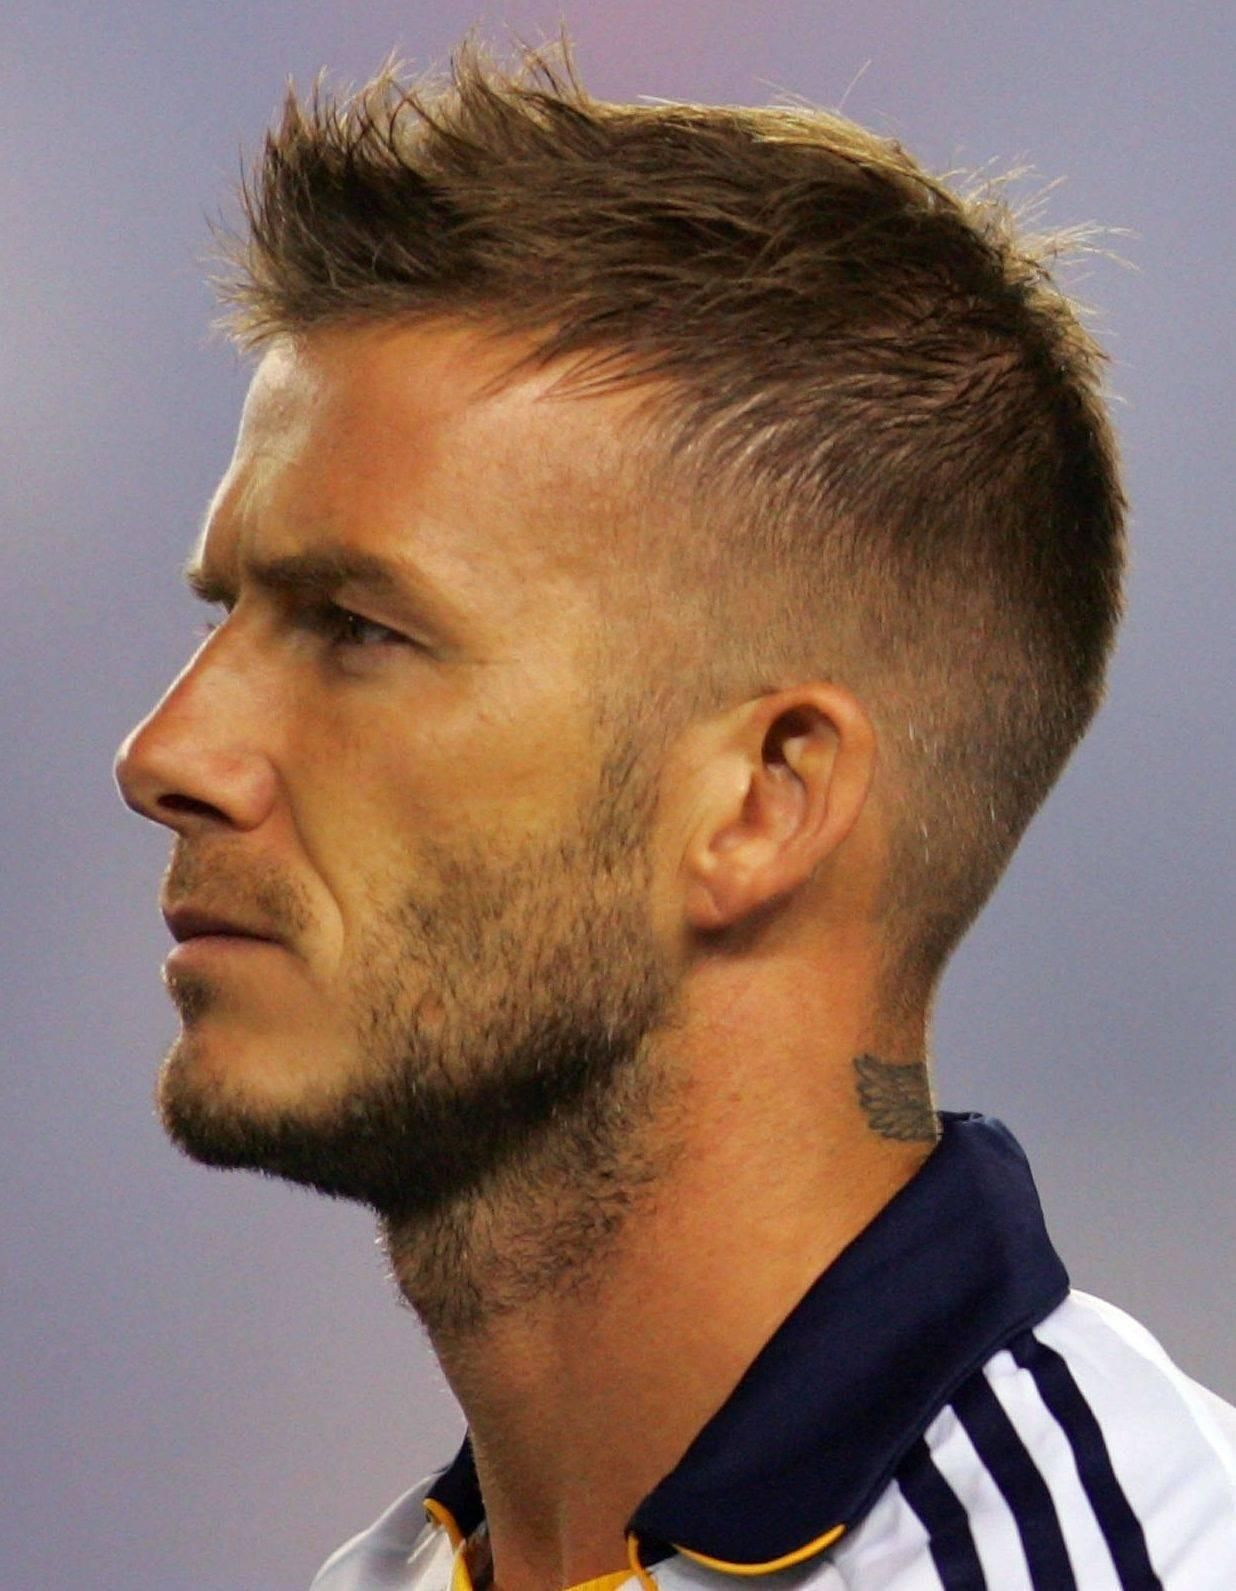 David beckham hairstyle picture gallery style pinterest hair